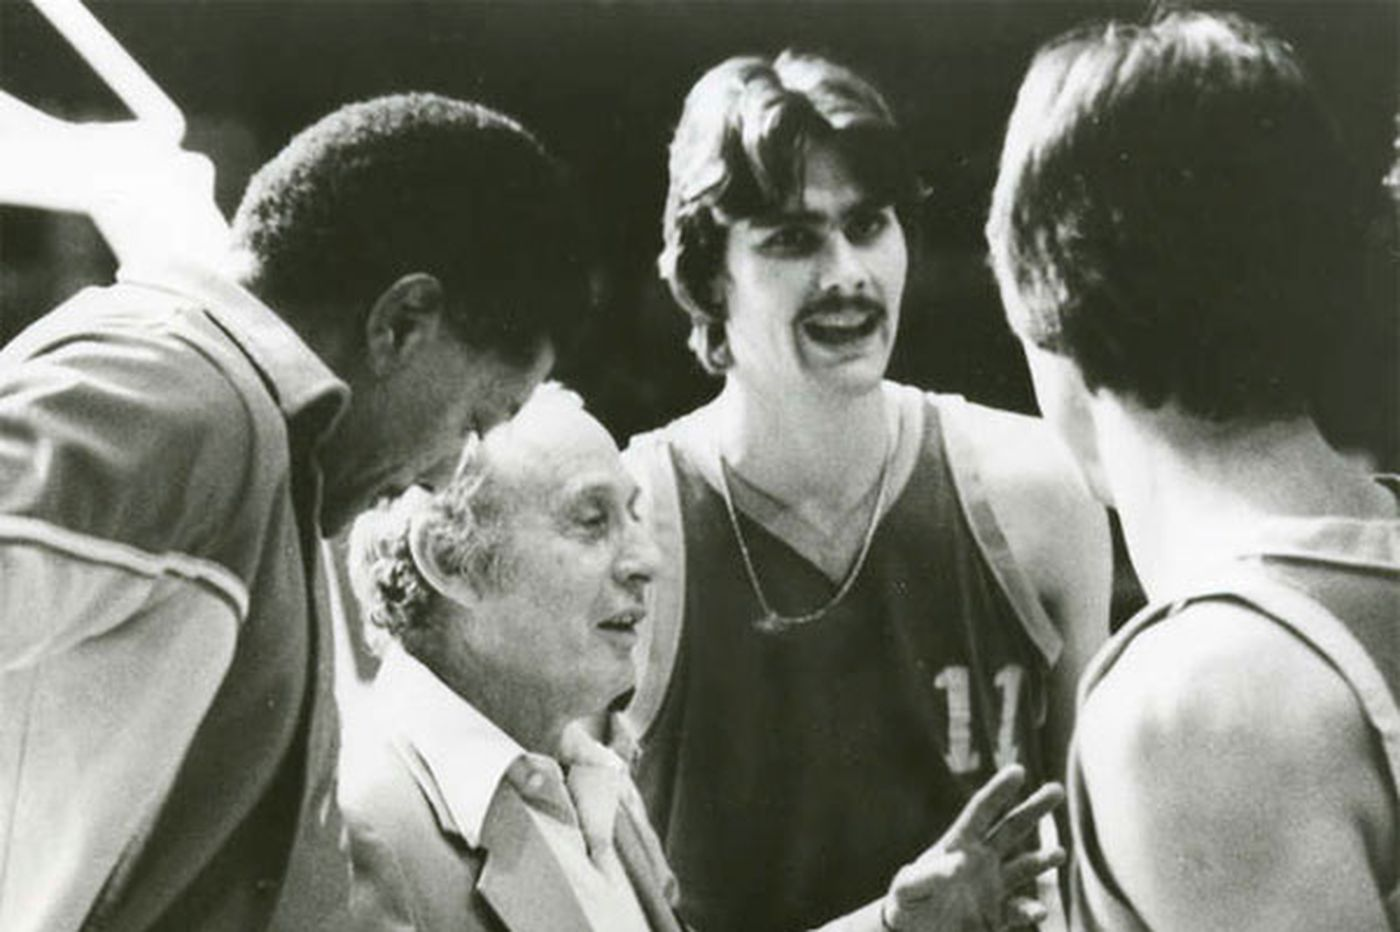 Louis Herman 'Red' Klotz, basketball player, coach and team owner